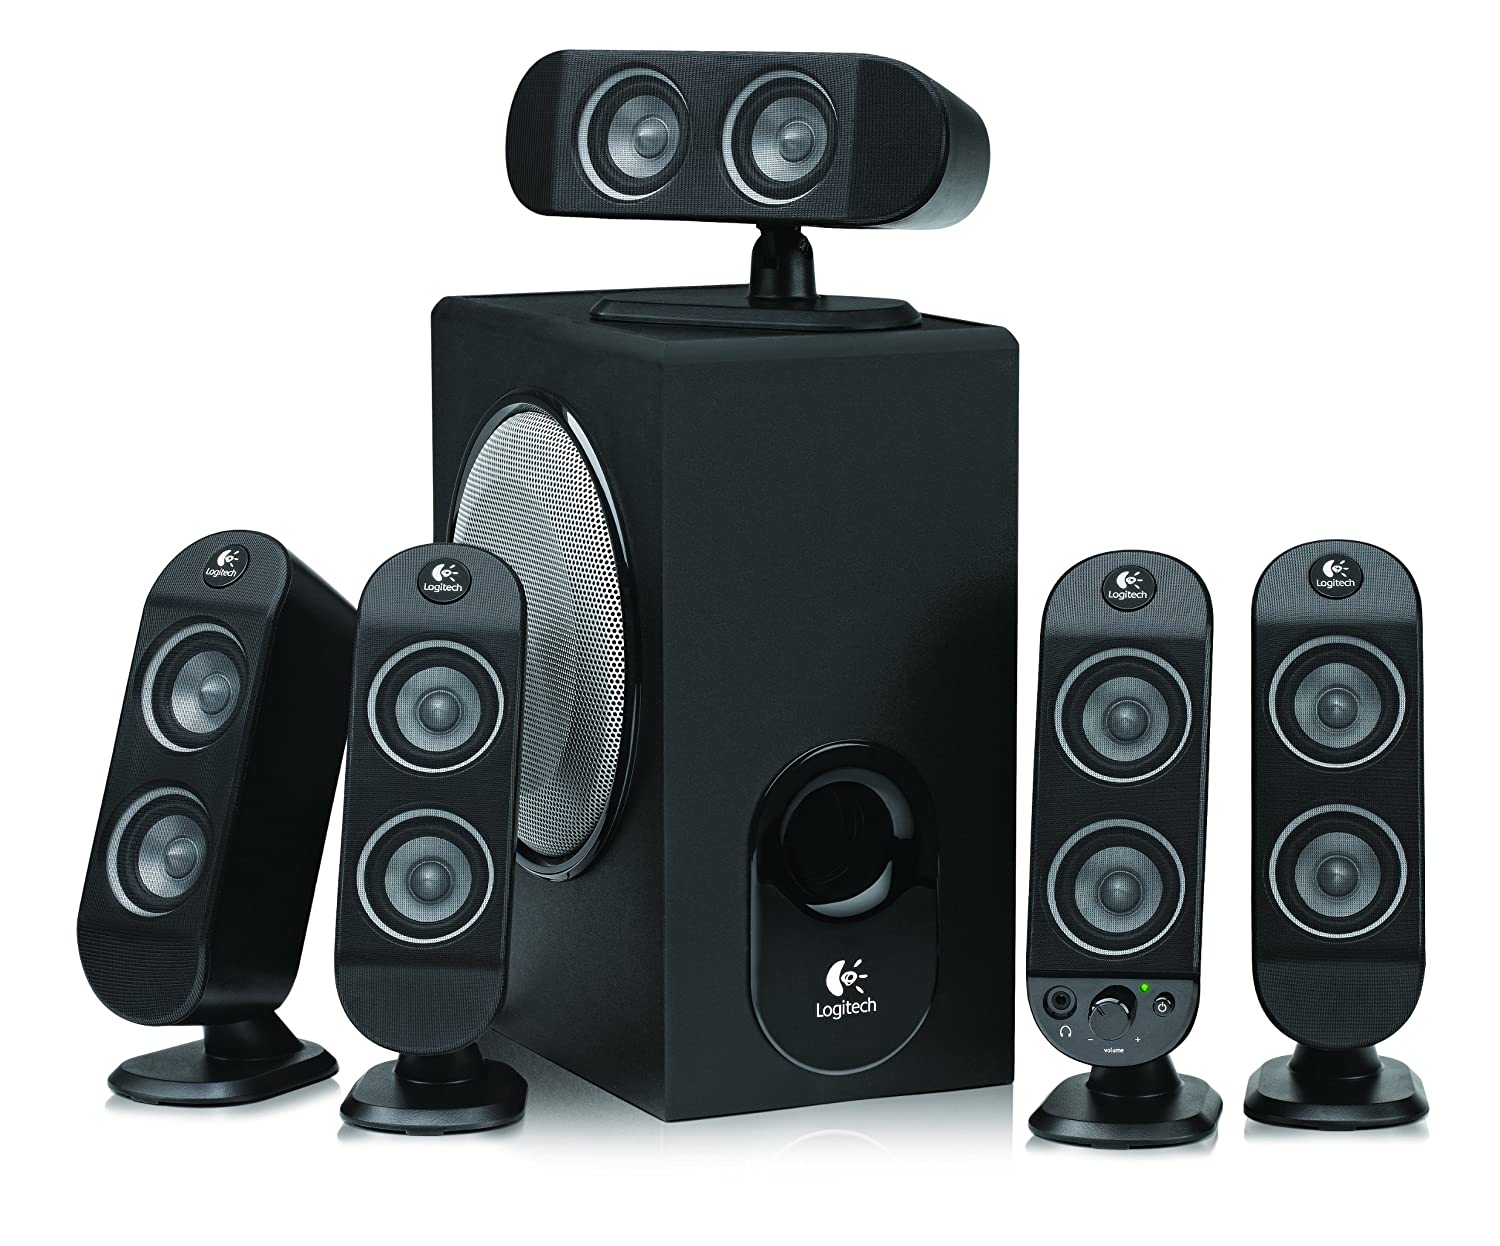 Eueasy X-530 PC Multimedia Home Theatre Speaker System: Amazon.co.uk:  Computers & Accessories